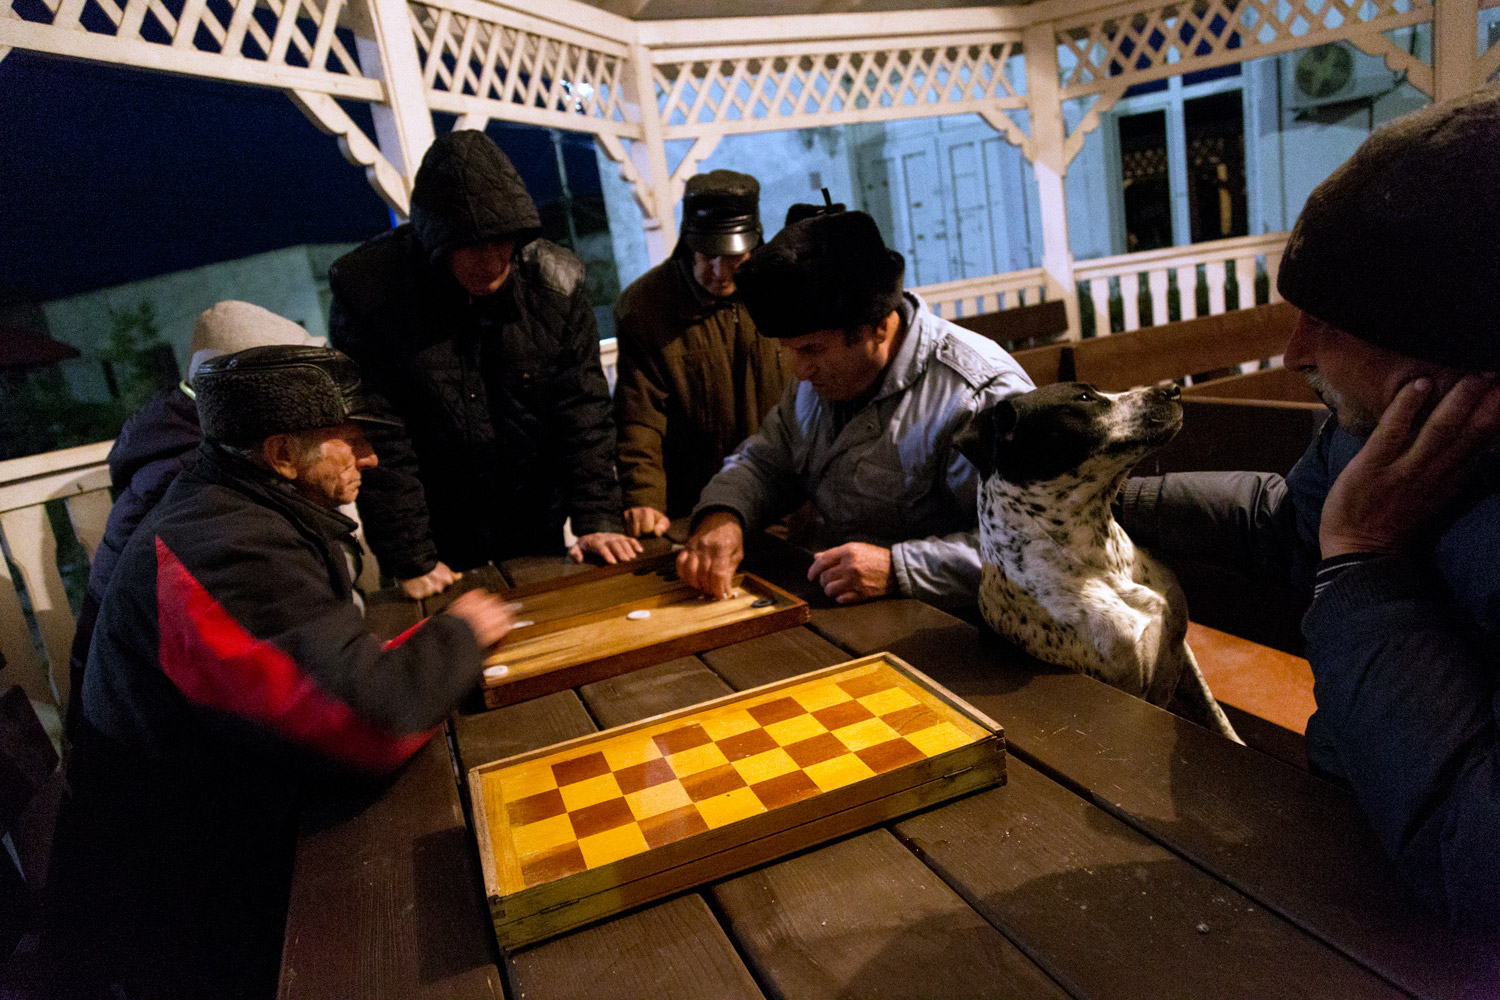 Sulina, Romania,November 2017. Men playing in a gazebo in the center of town.